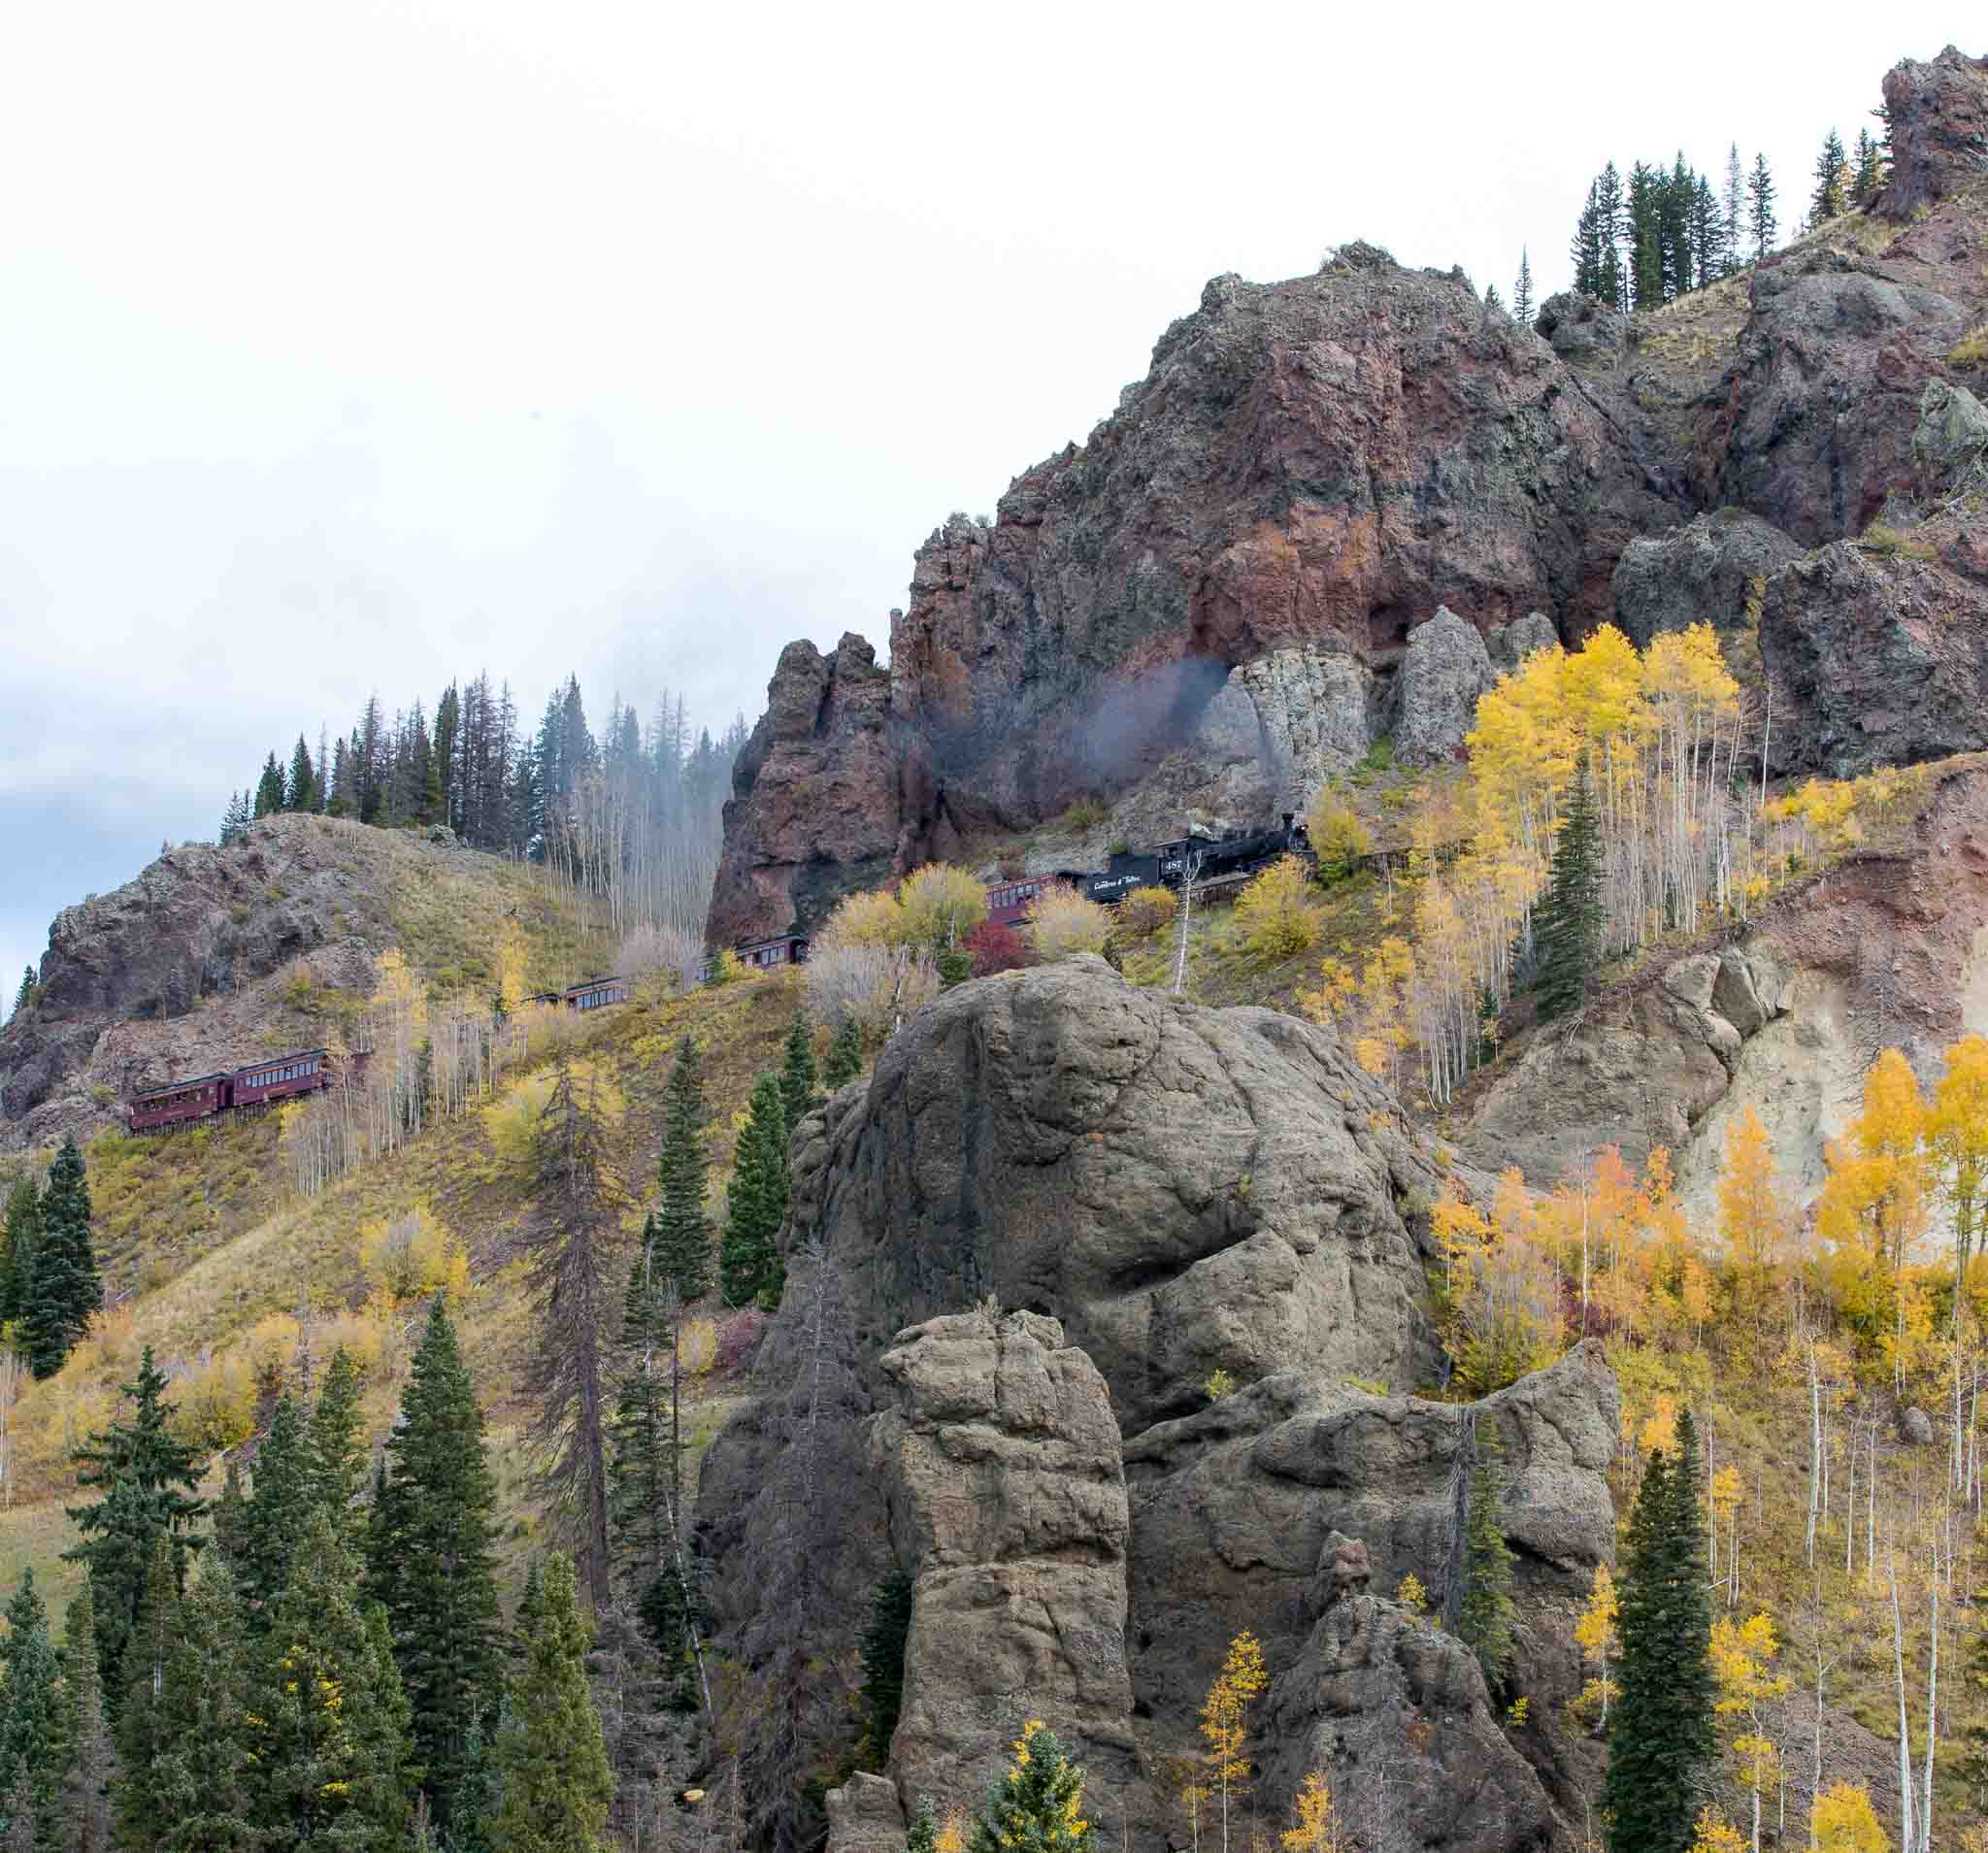 Cumbres & Toltec Excursion train climbing Cumbres Pass